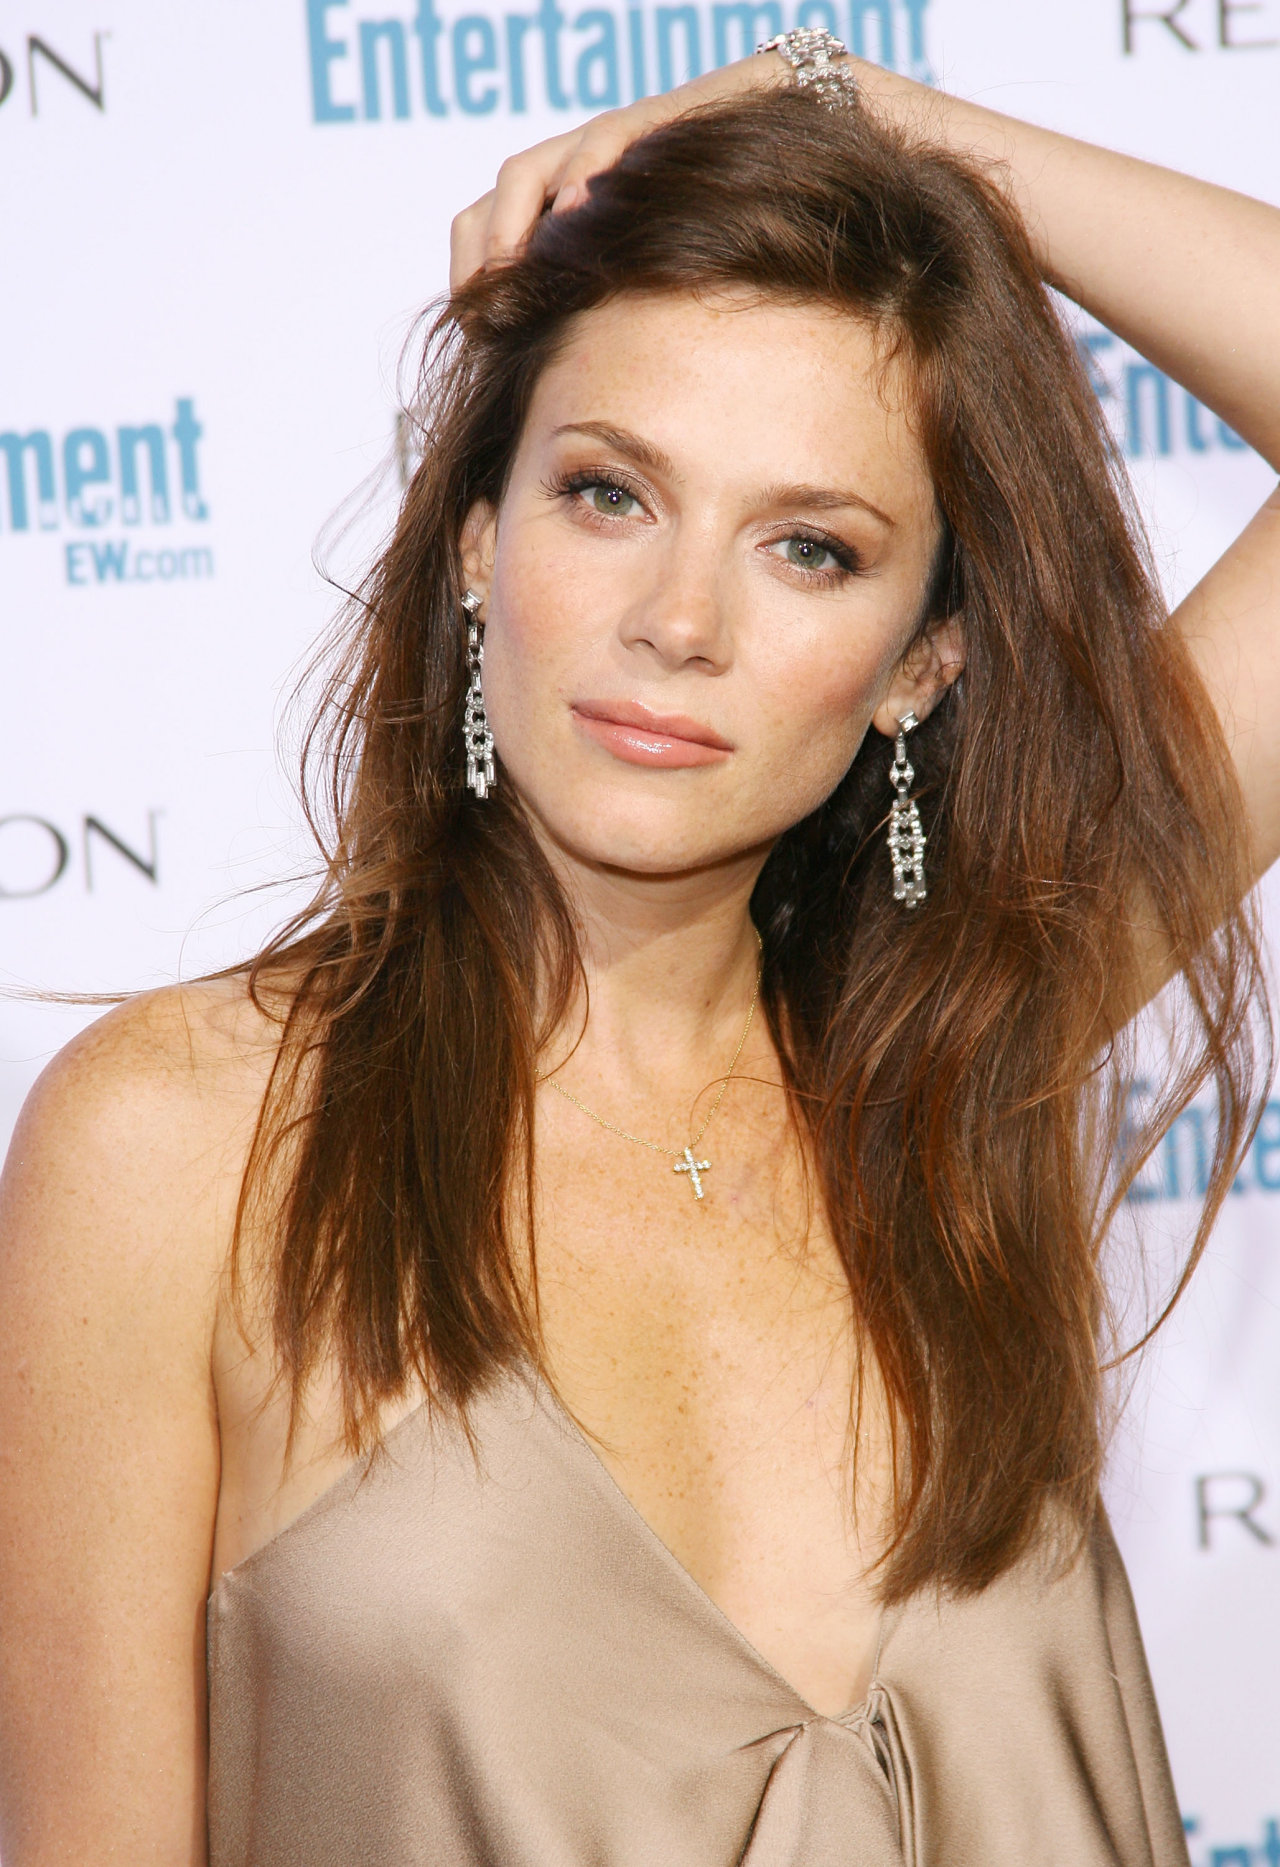 Anna Friel leaked wallpapers